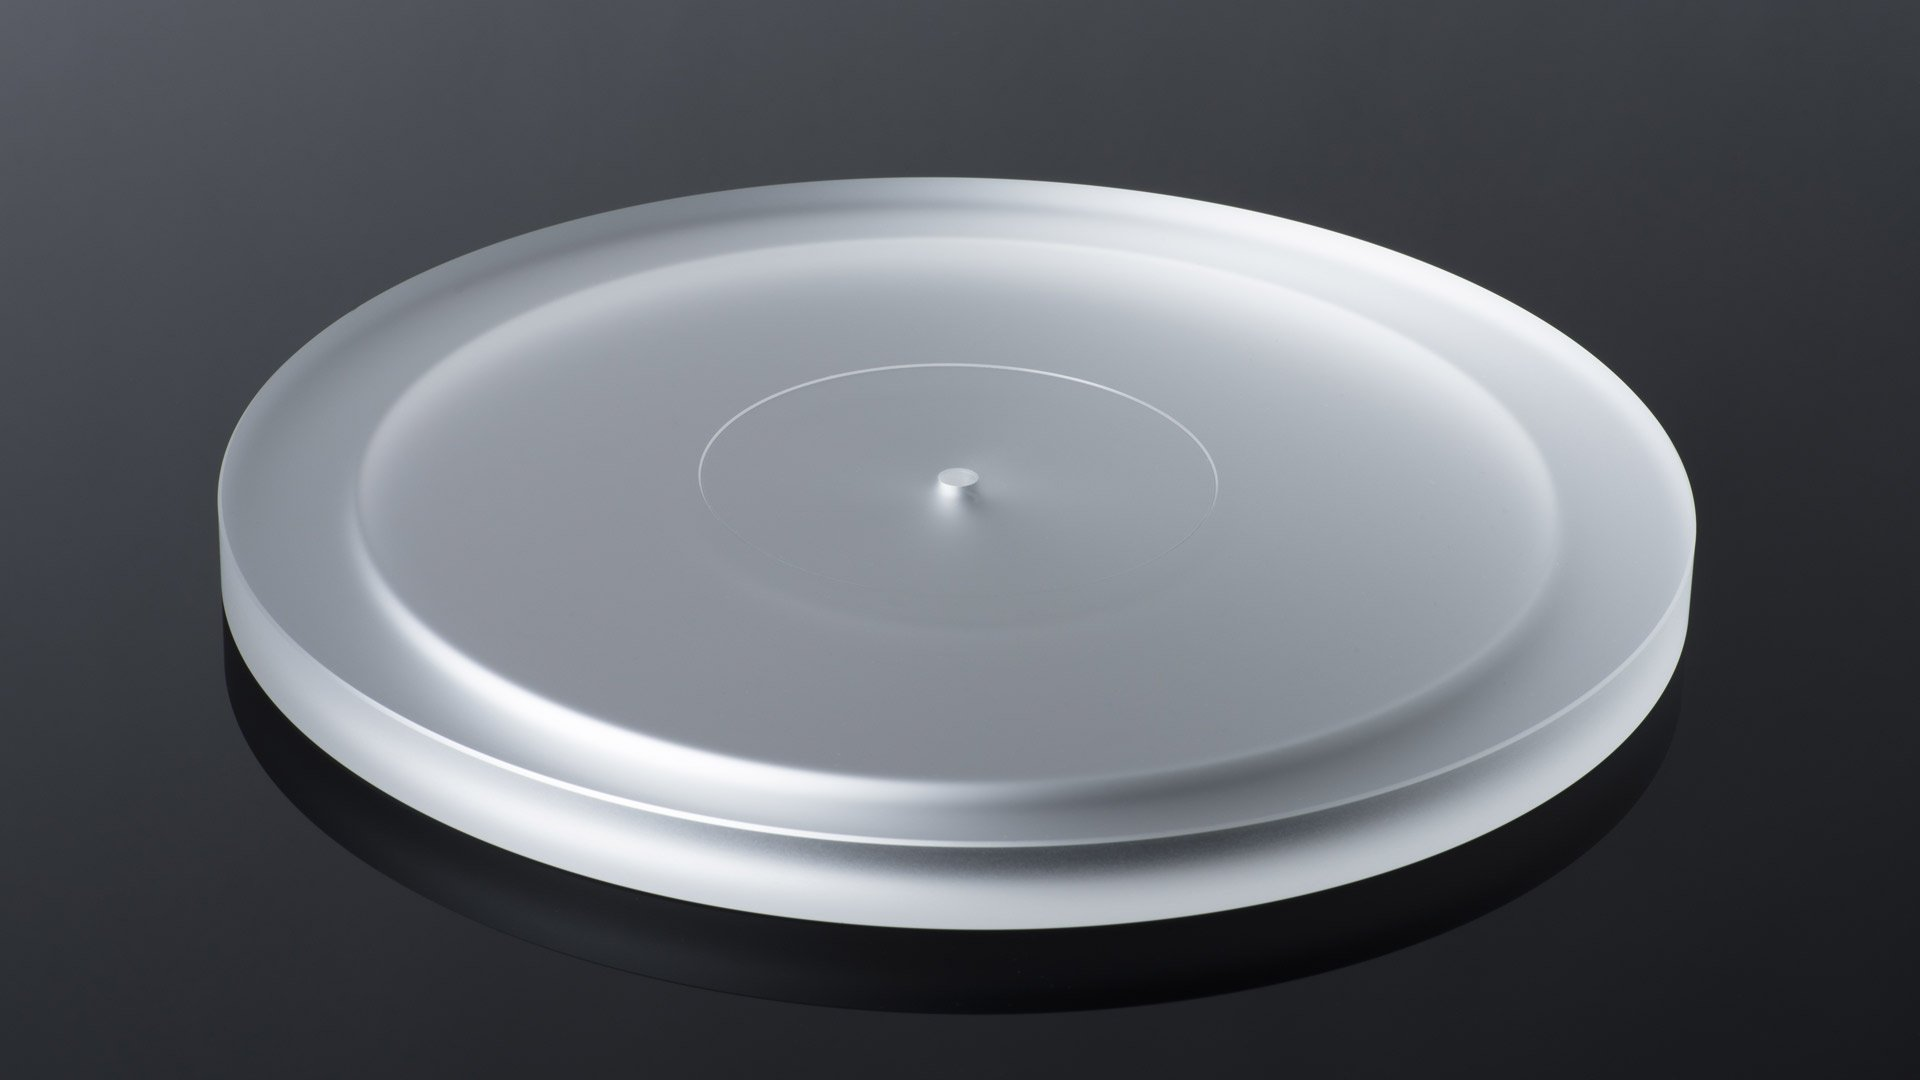 Acrylic Platter for Debut Carbon RecordMaster HiRes